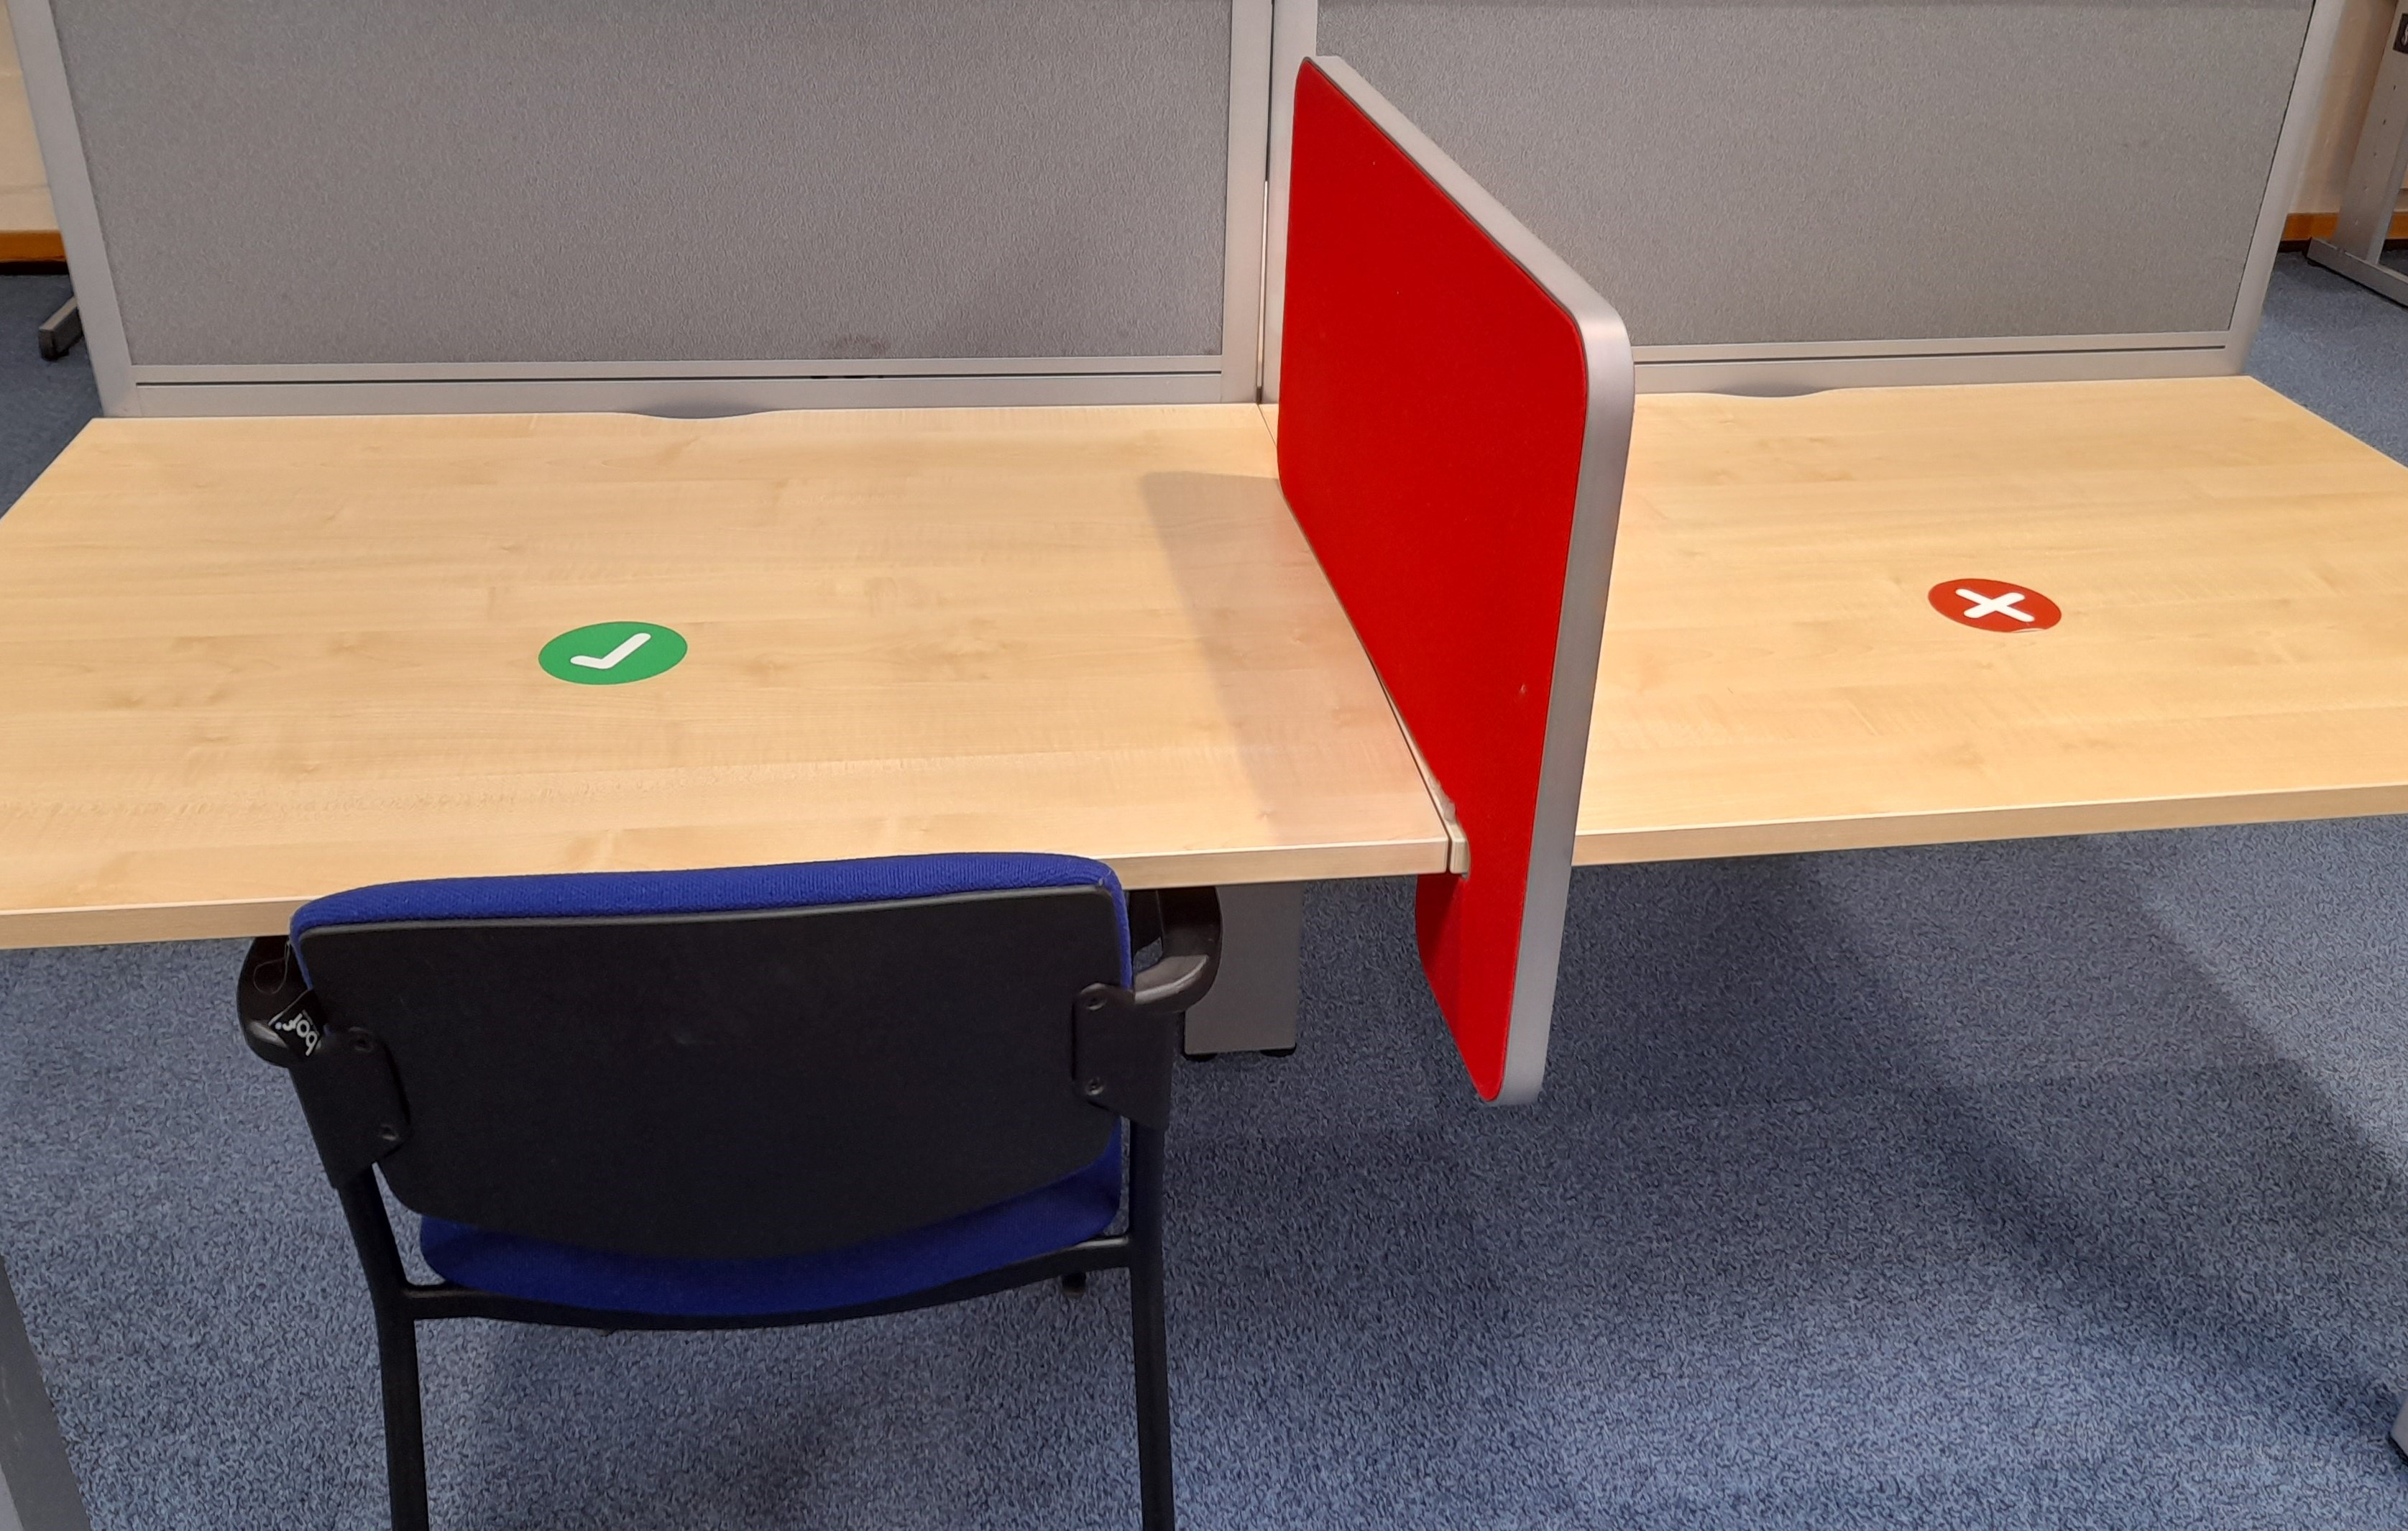 Study desks with a green tick can be used.